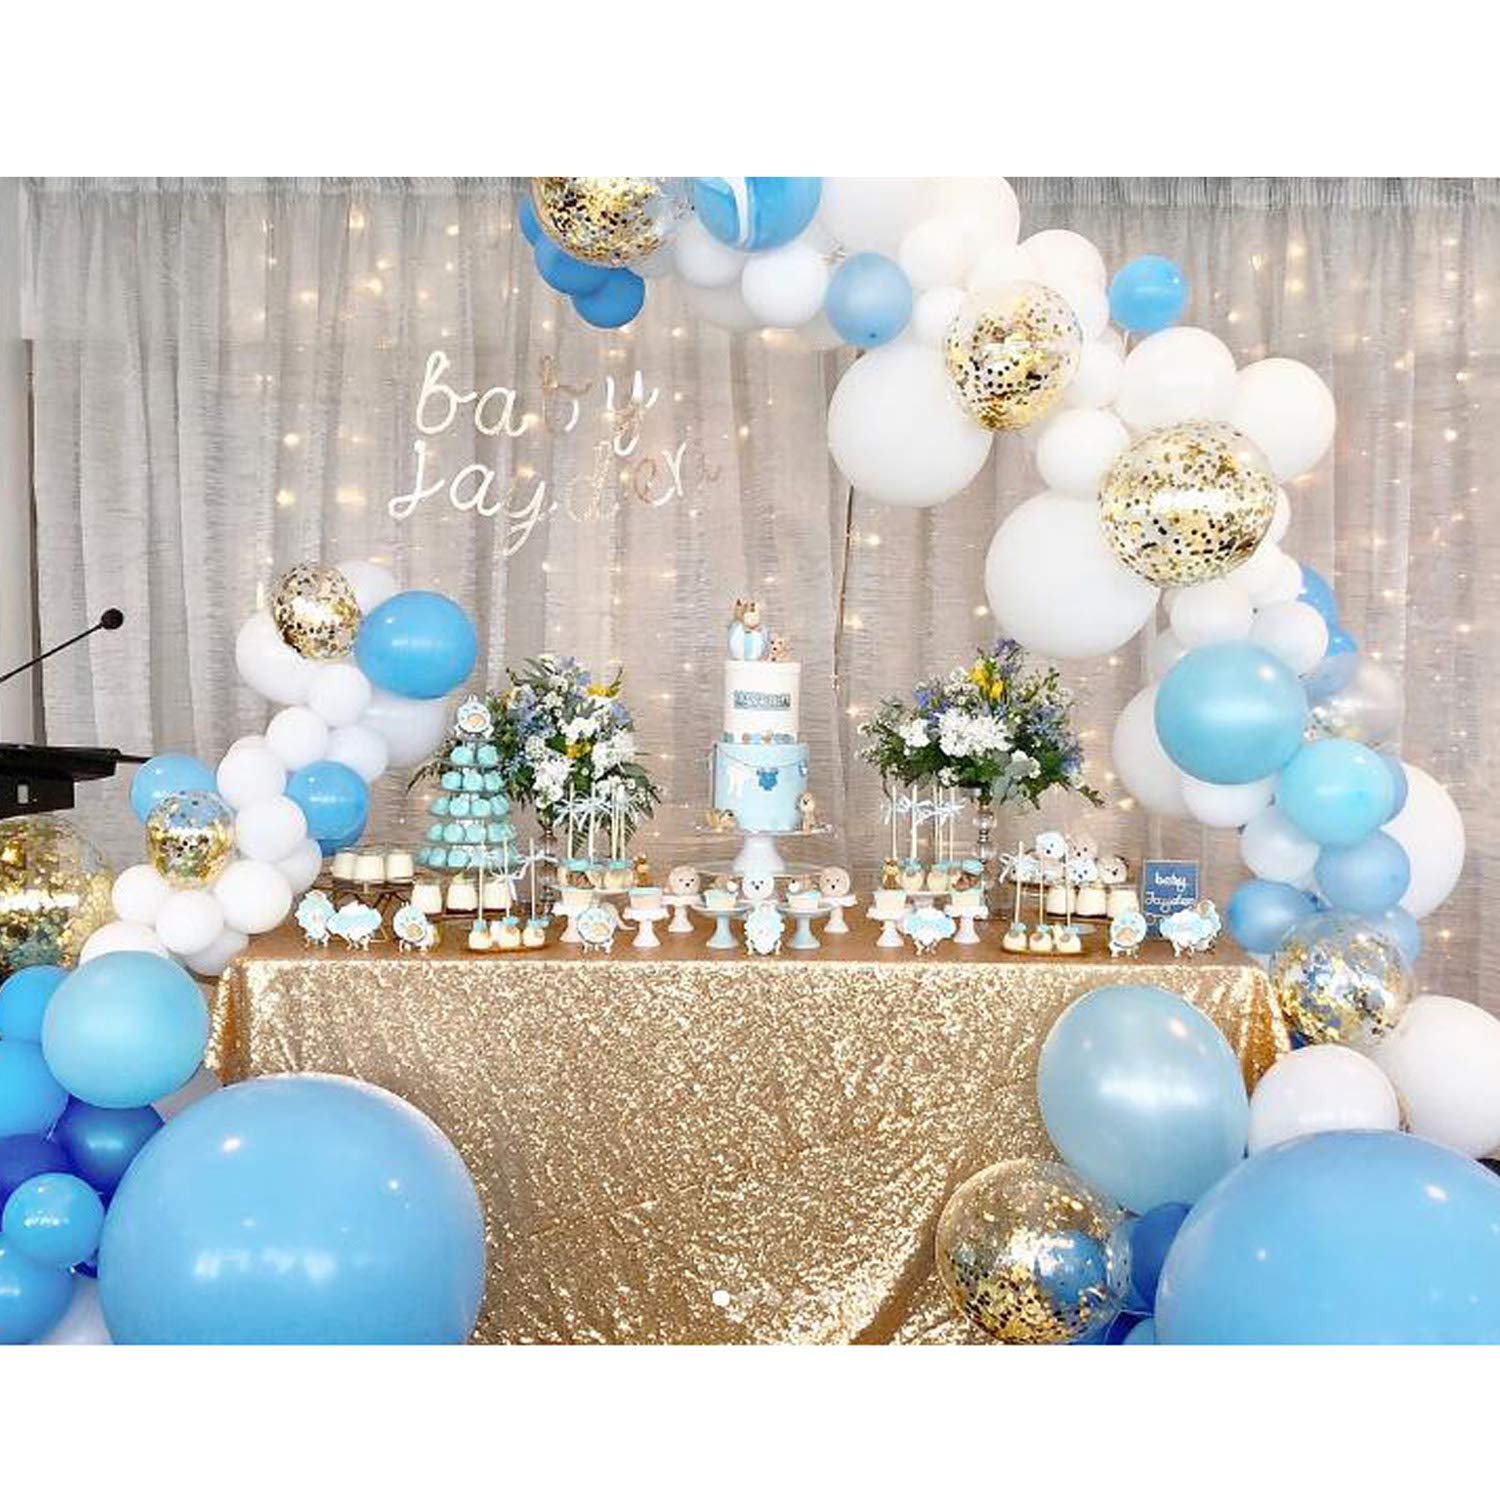 TOPLLON Blue Confetti Balloons 100Pcs Matte Party Latex Balloon Arch Kit for Baby Shower Birthday Party Decoration and Gender Reveal Balloons (18 Inch 10 Inch 5 Inch)